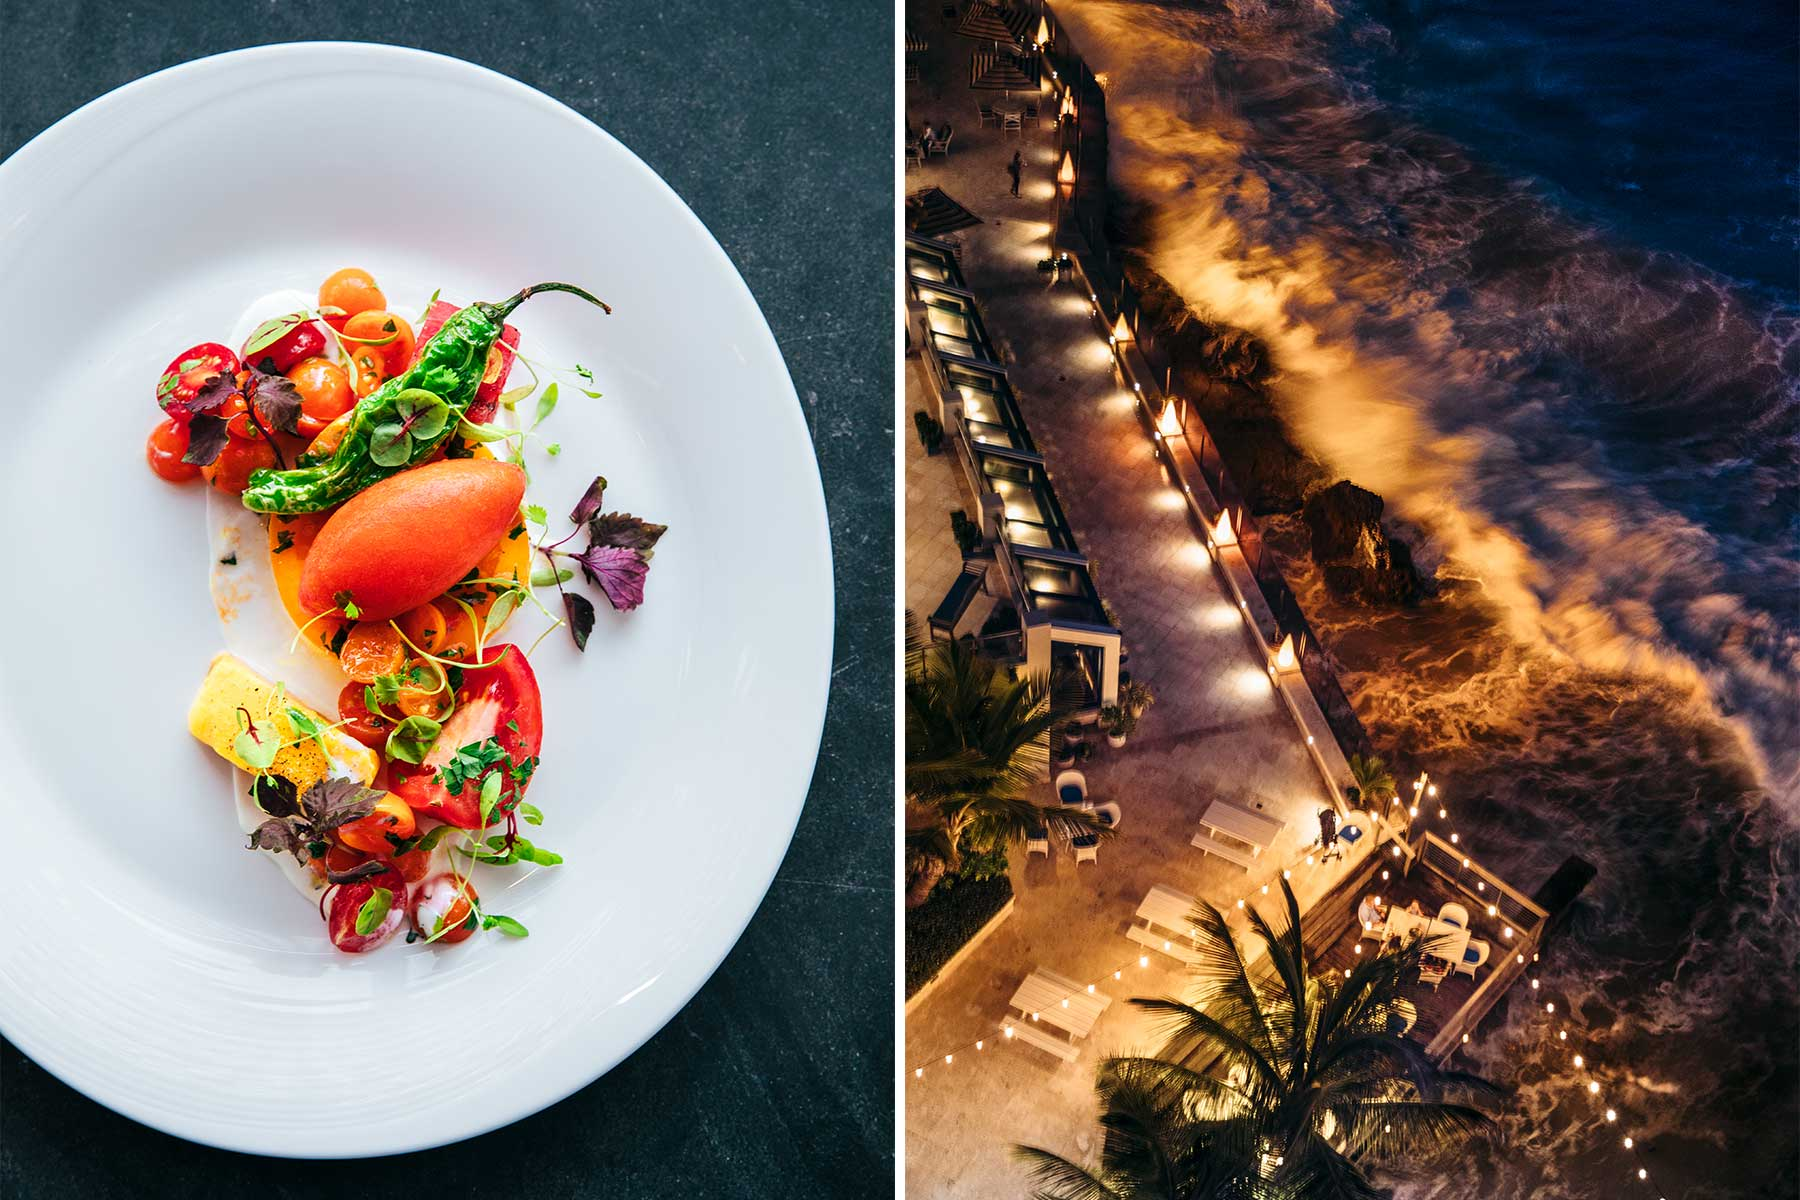 Two photos from Puerto Rico. One shows a refined tomato and mango dish, and the other shows an overhead night view of a waterfront terrace with waves crashing